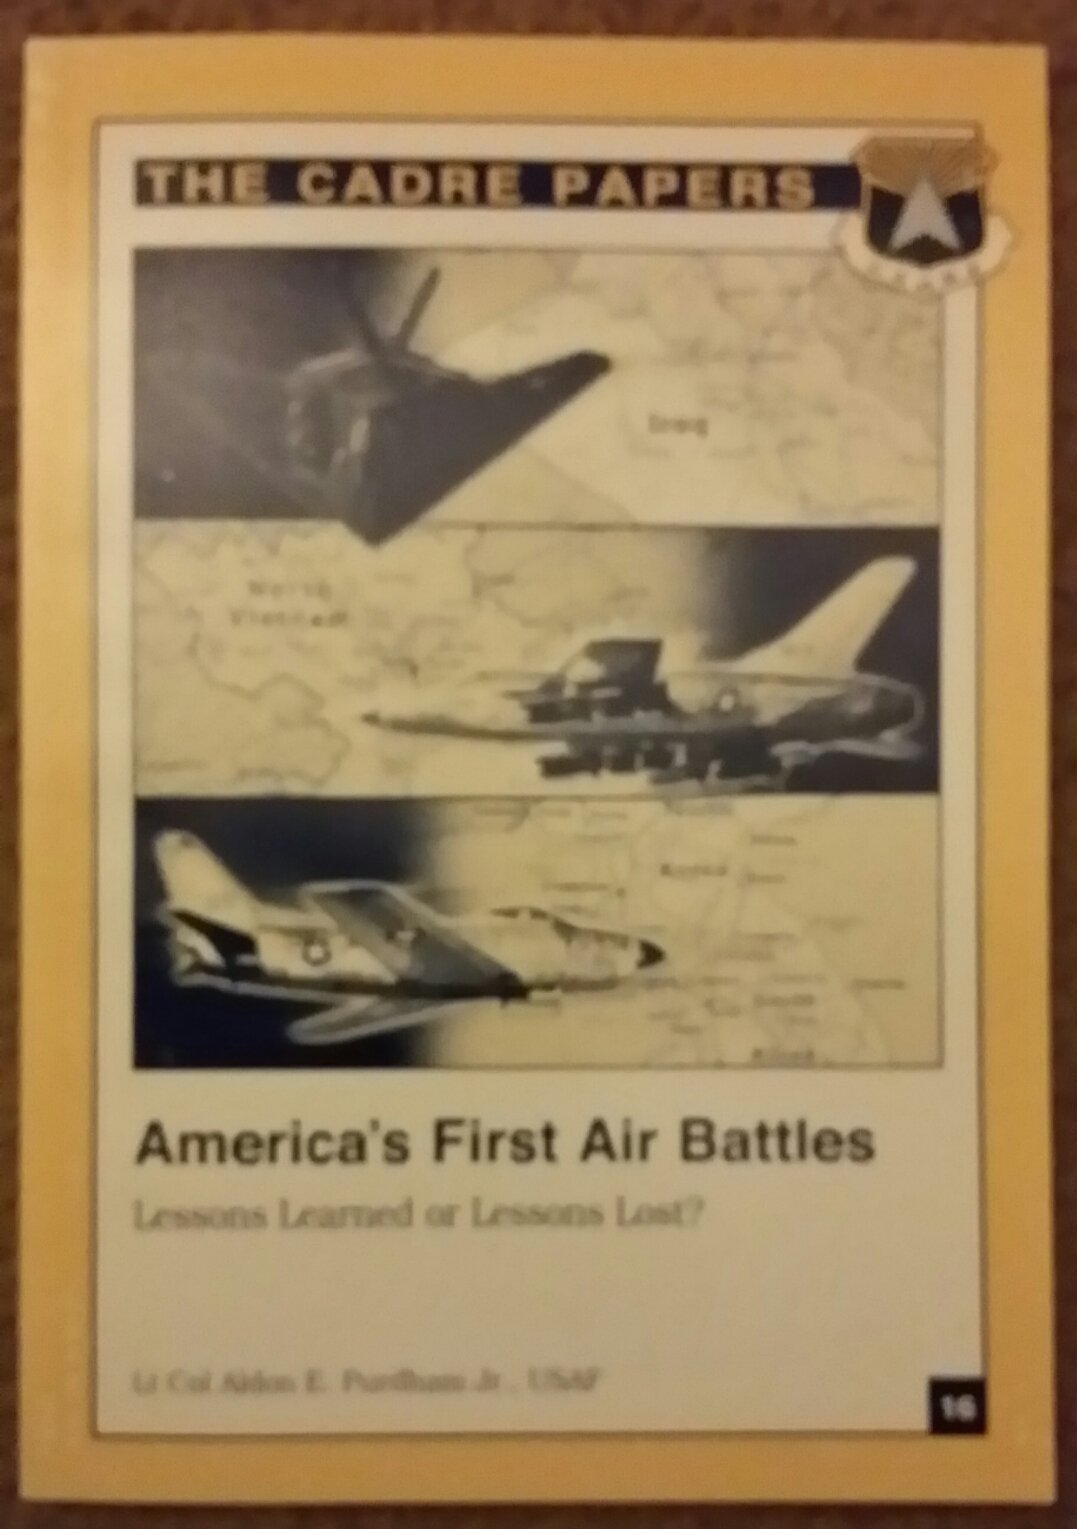 America's First Air Battles Lessons Learned or Lessons Lost? (The Cadre Papers) PDF